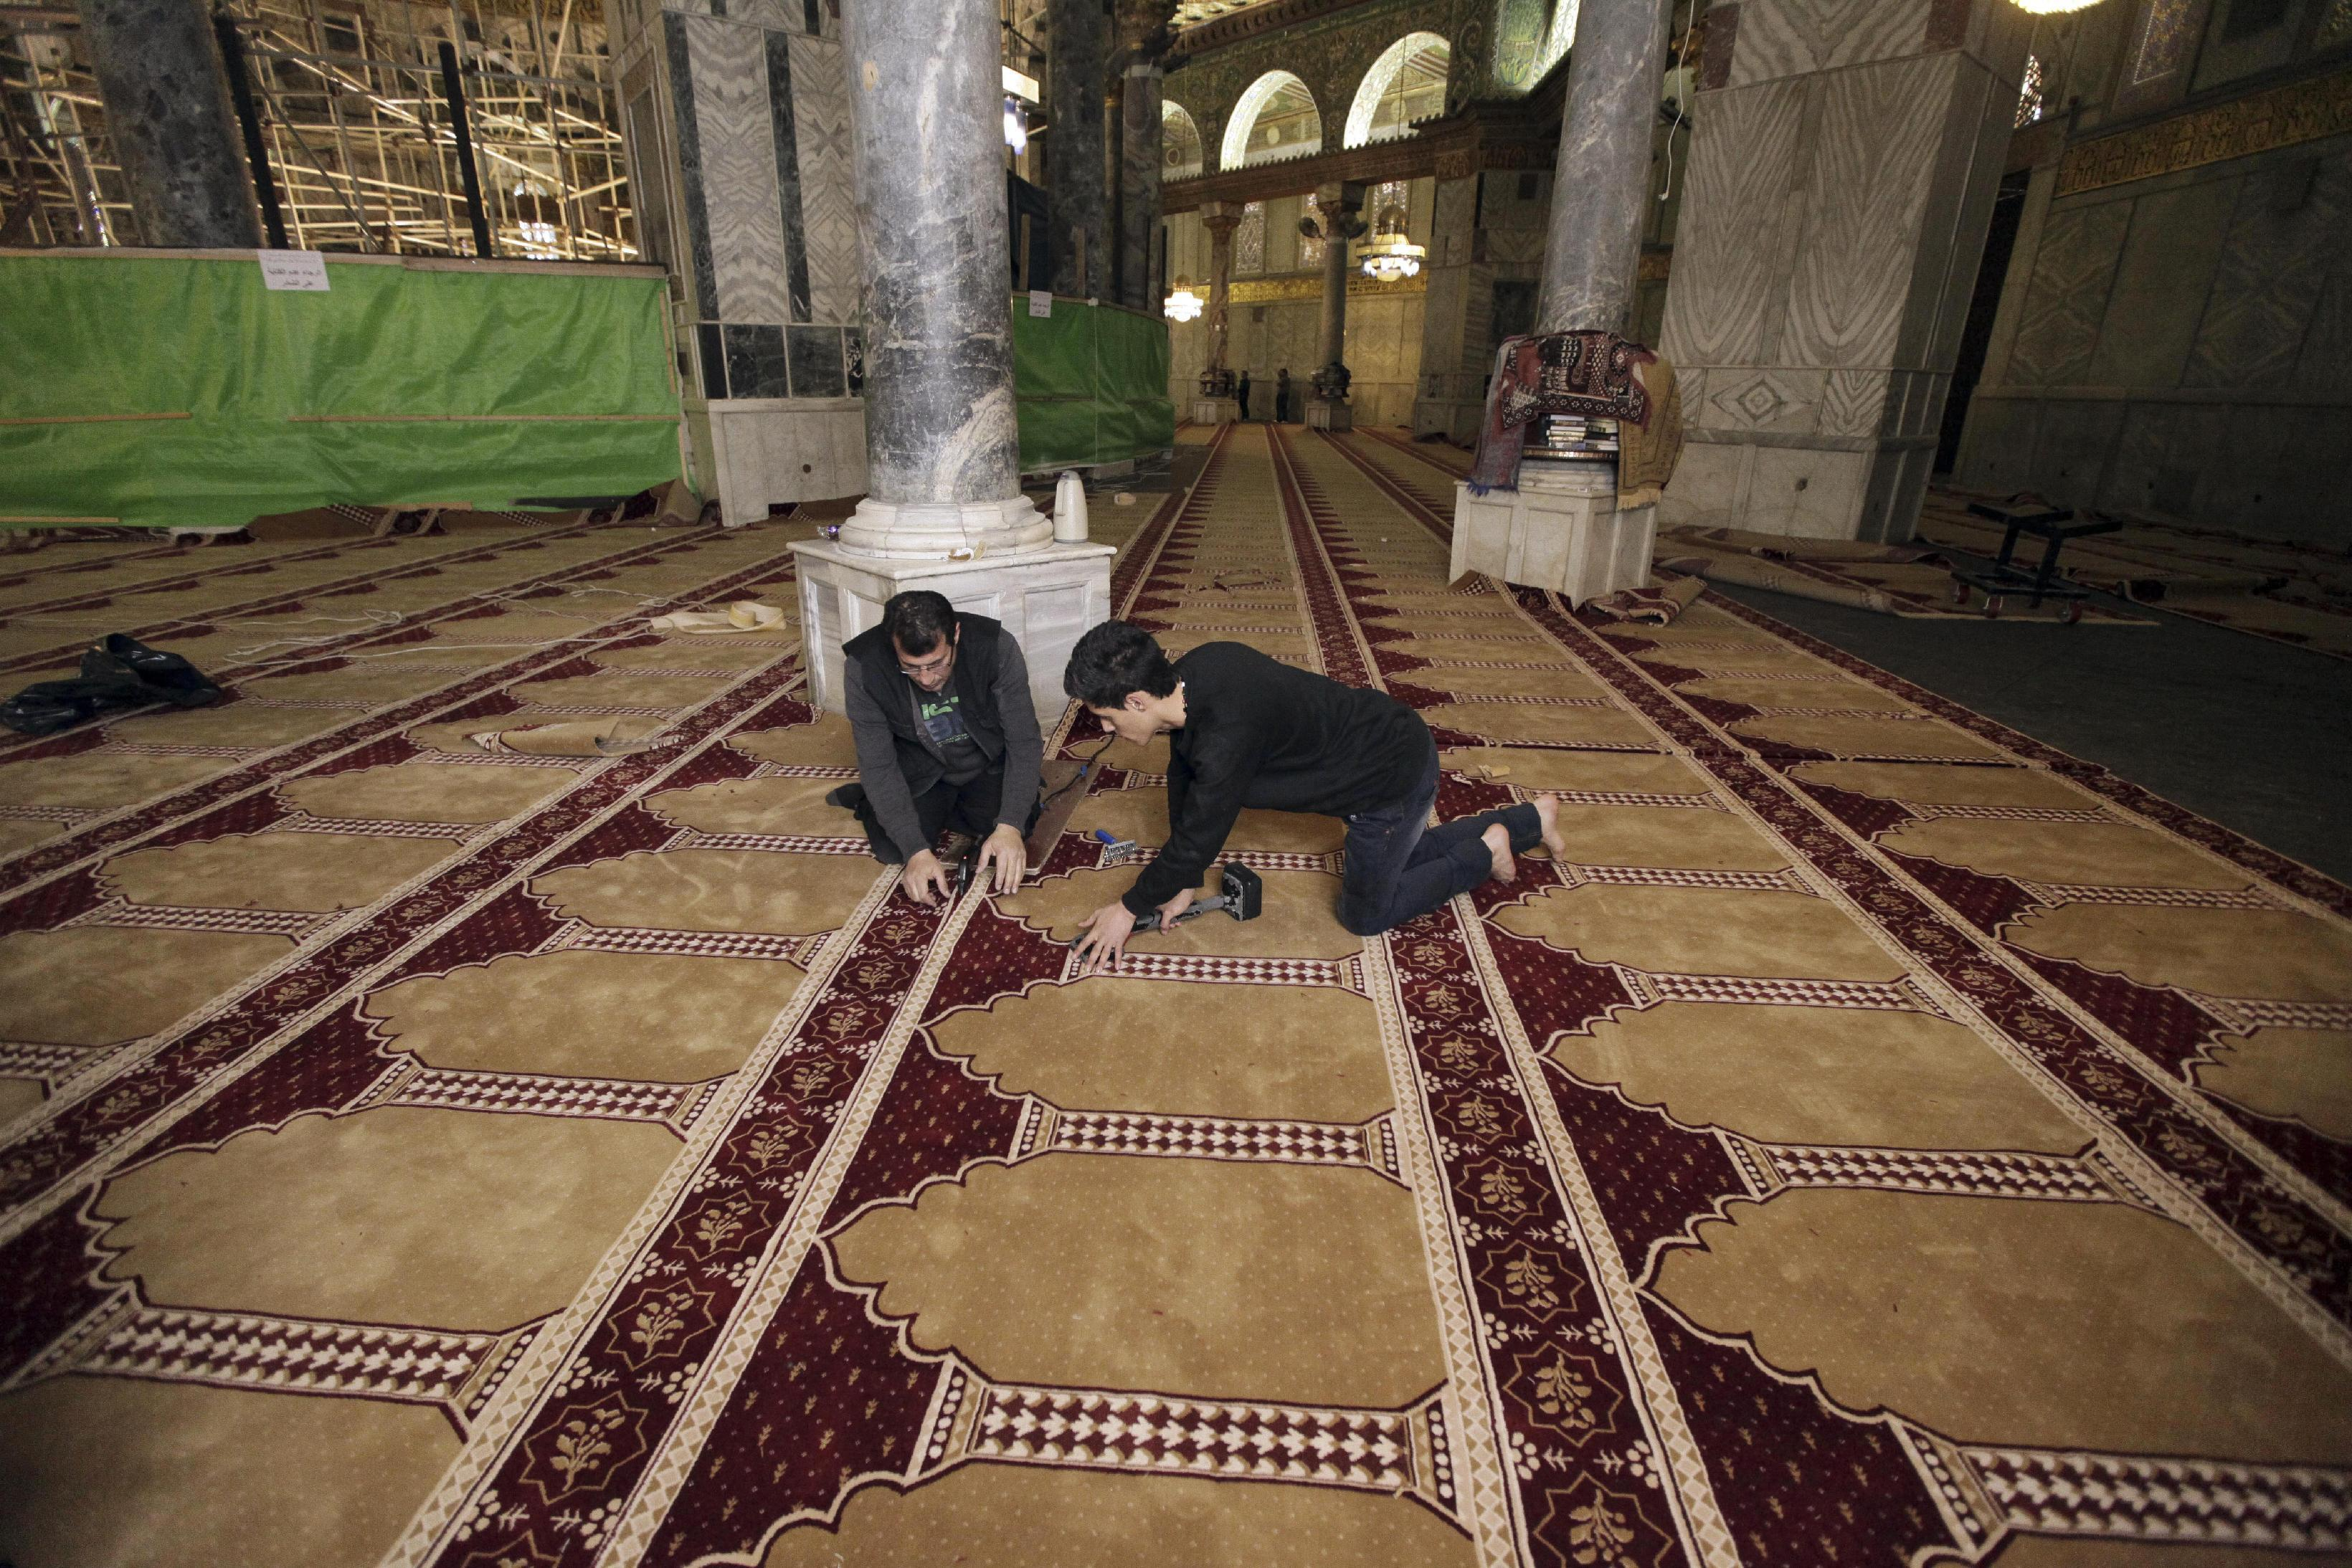 Replacing carpet at Jerusalem shrine reveals religious rift